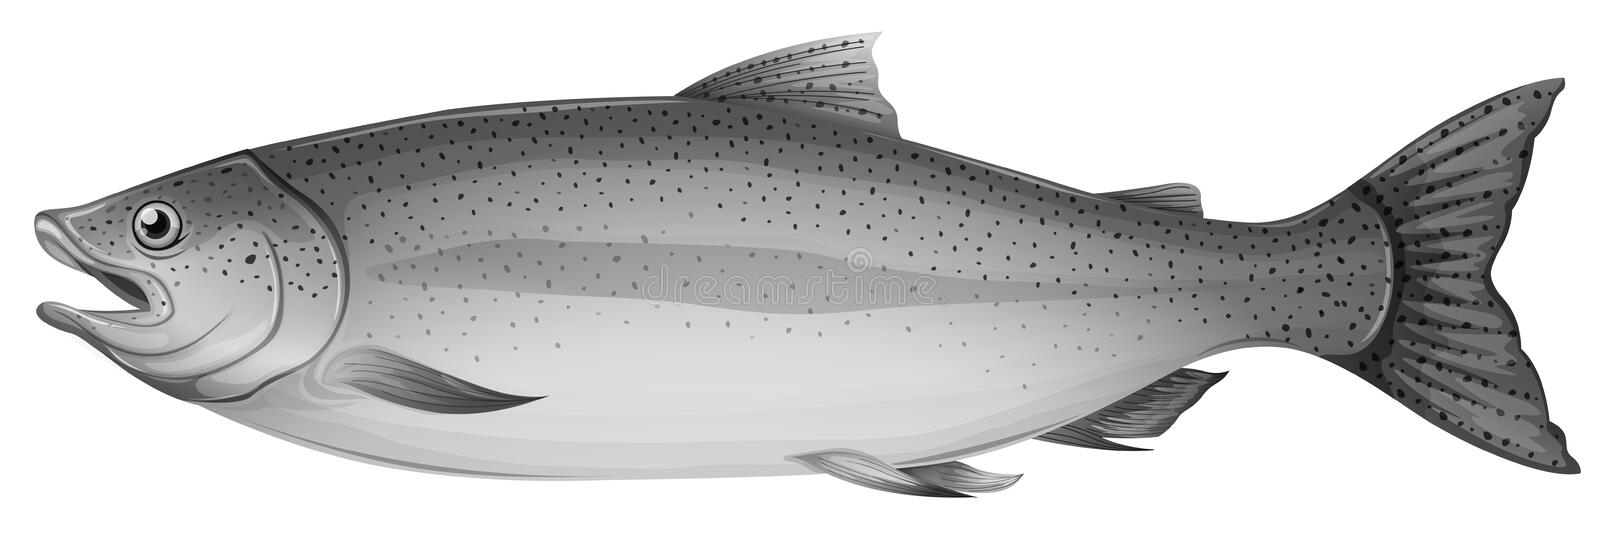 A grey trout fish. Illustration of a grey trout fish on a white background royalty free illustration